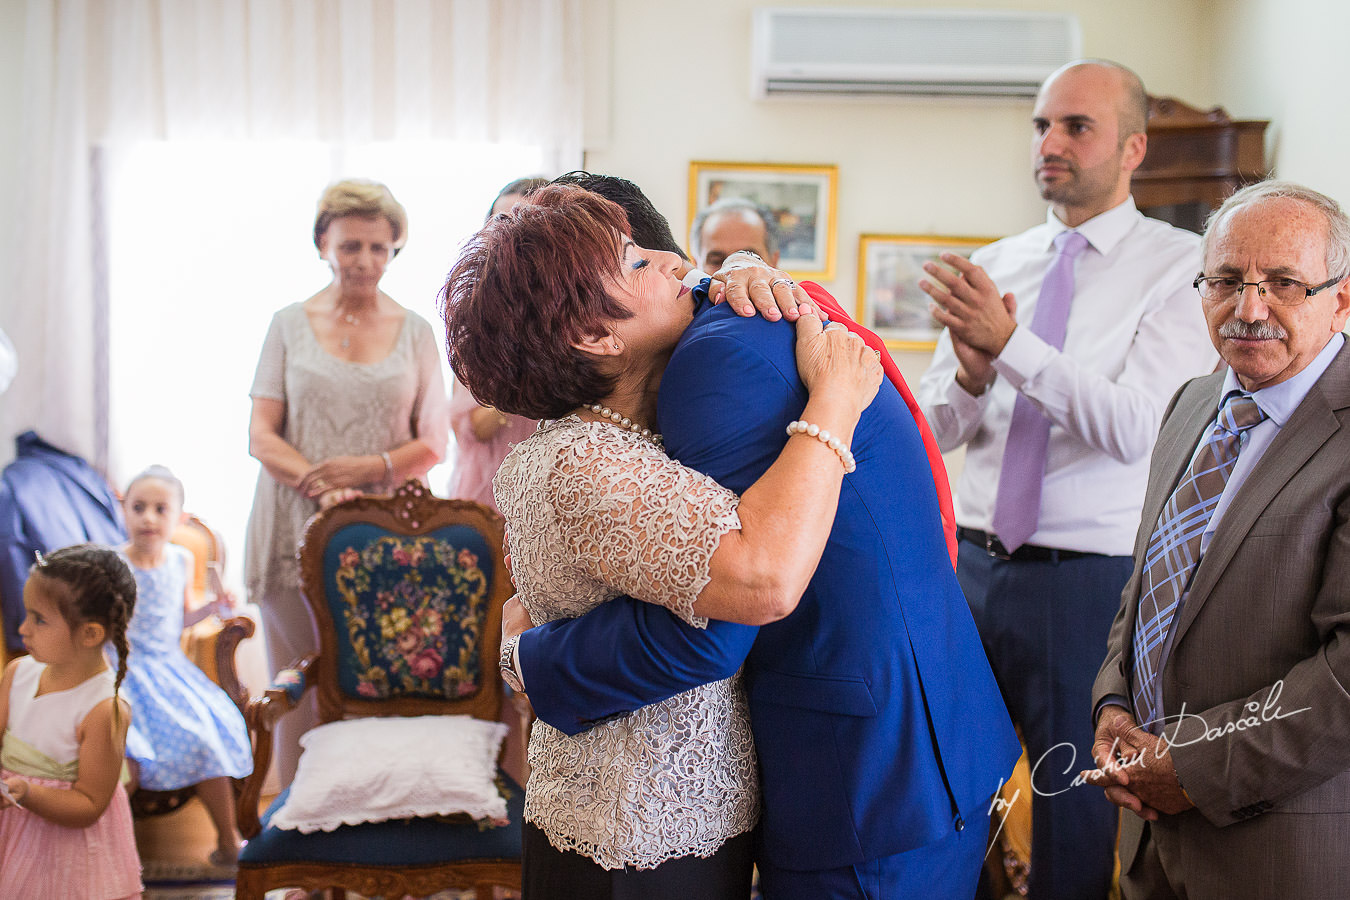 Mom and son moments, captured at a wedding in Cyprus by Photographer Cristian Dascalu.